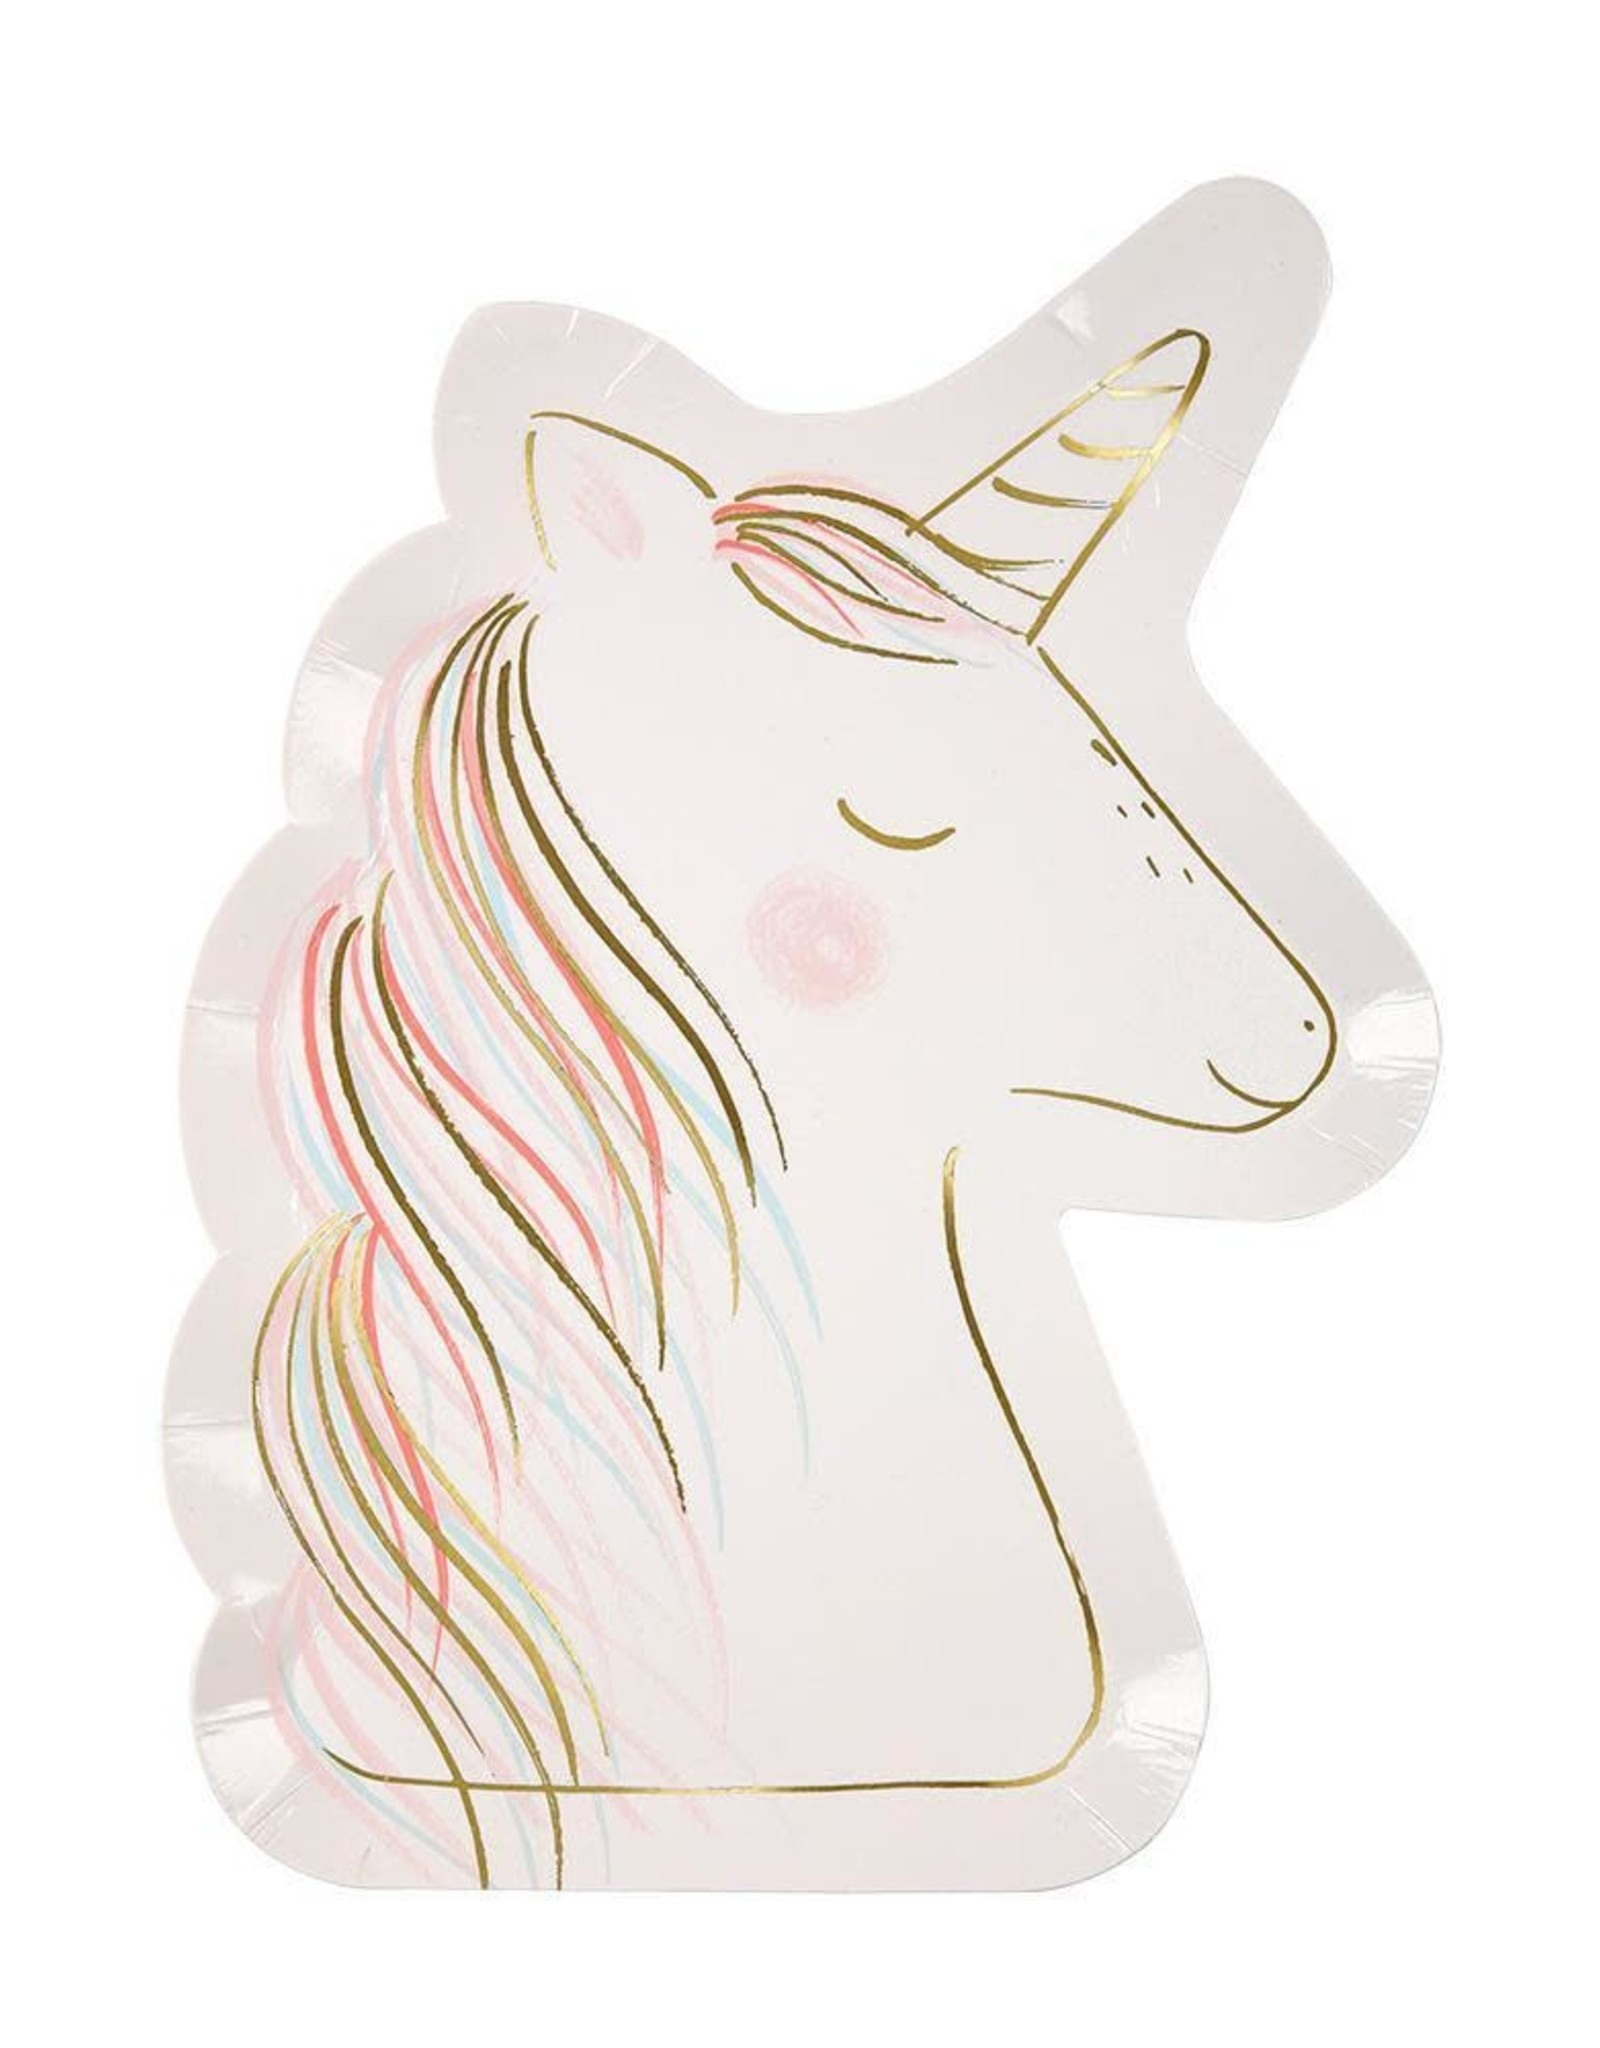 Meri Meri Pack Of Plates - Unicorn